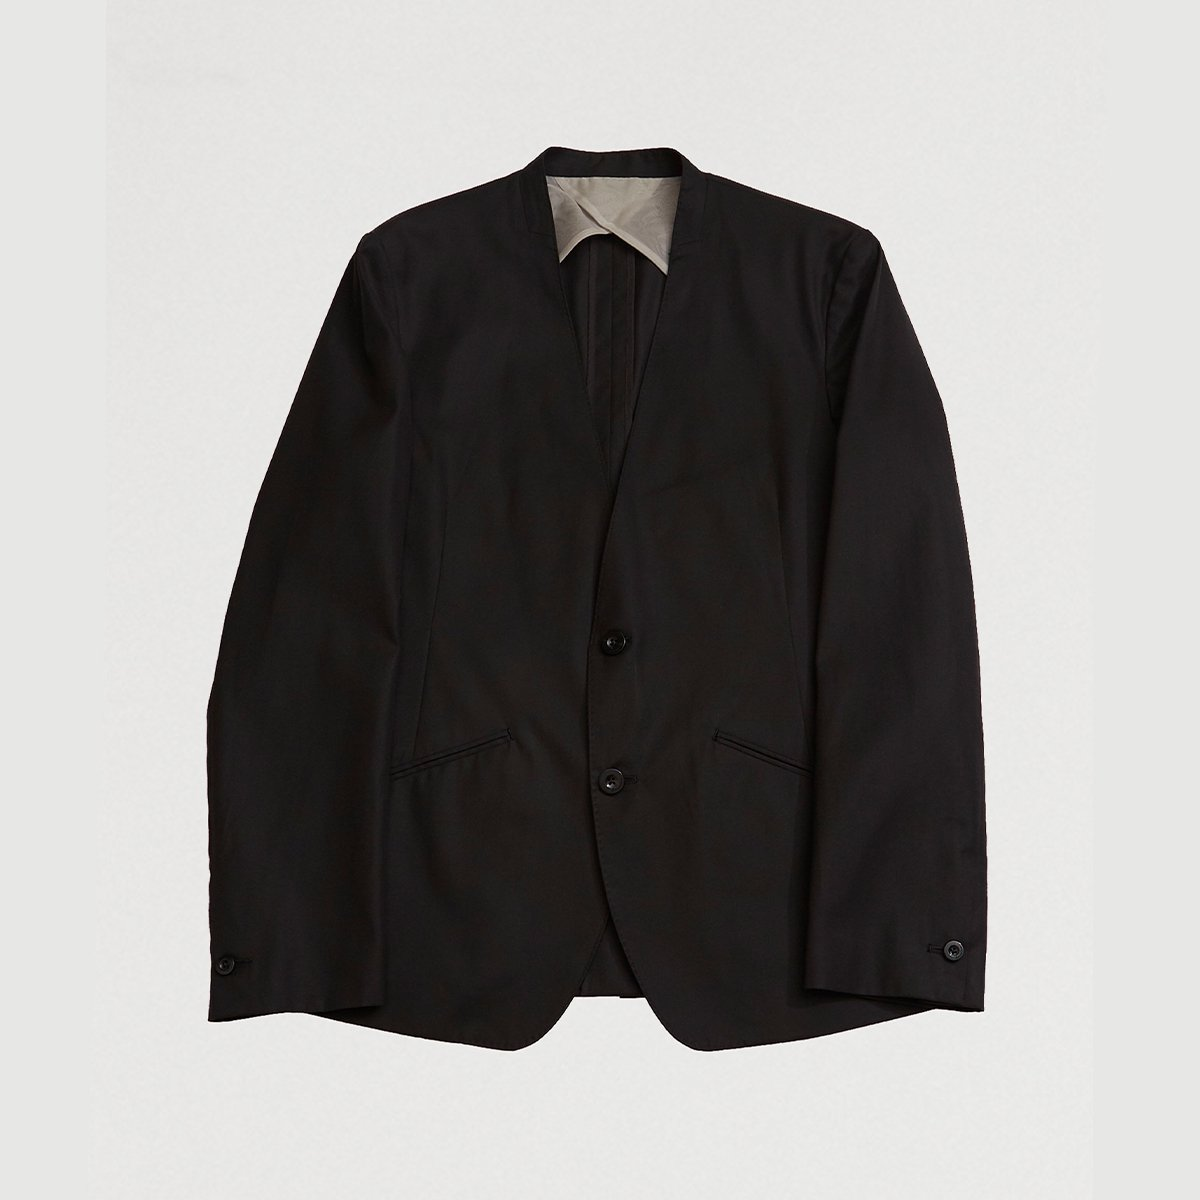 <img class='new_mark_img1' src='https://img.shop-pro.jp/img/new/icons5.gif' style='border:none;display:inline;margin:0px;padding:0px;width:auto;' />NO COLLAR JACKET / BLACK